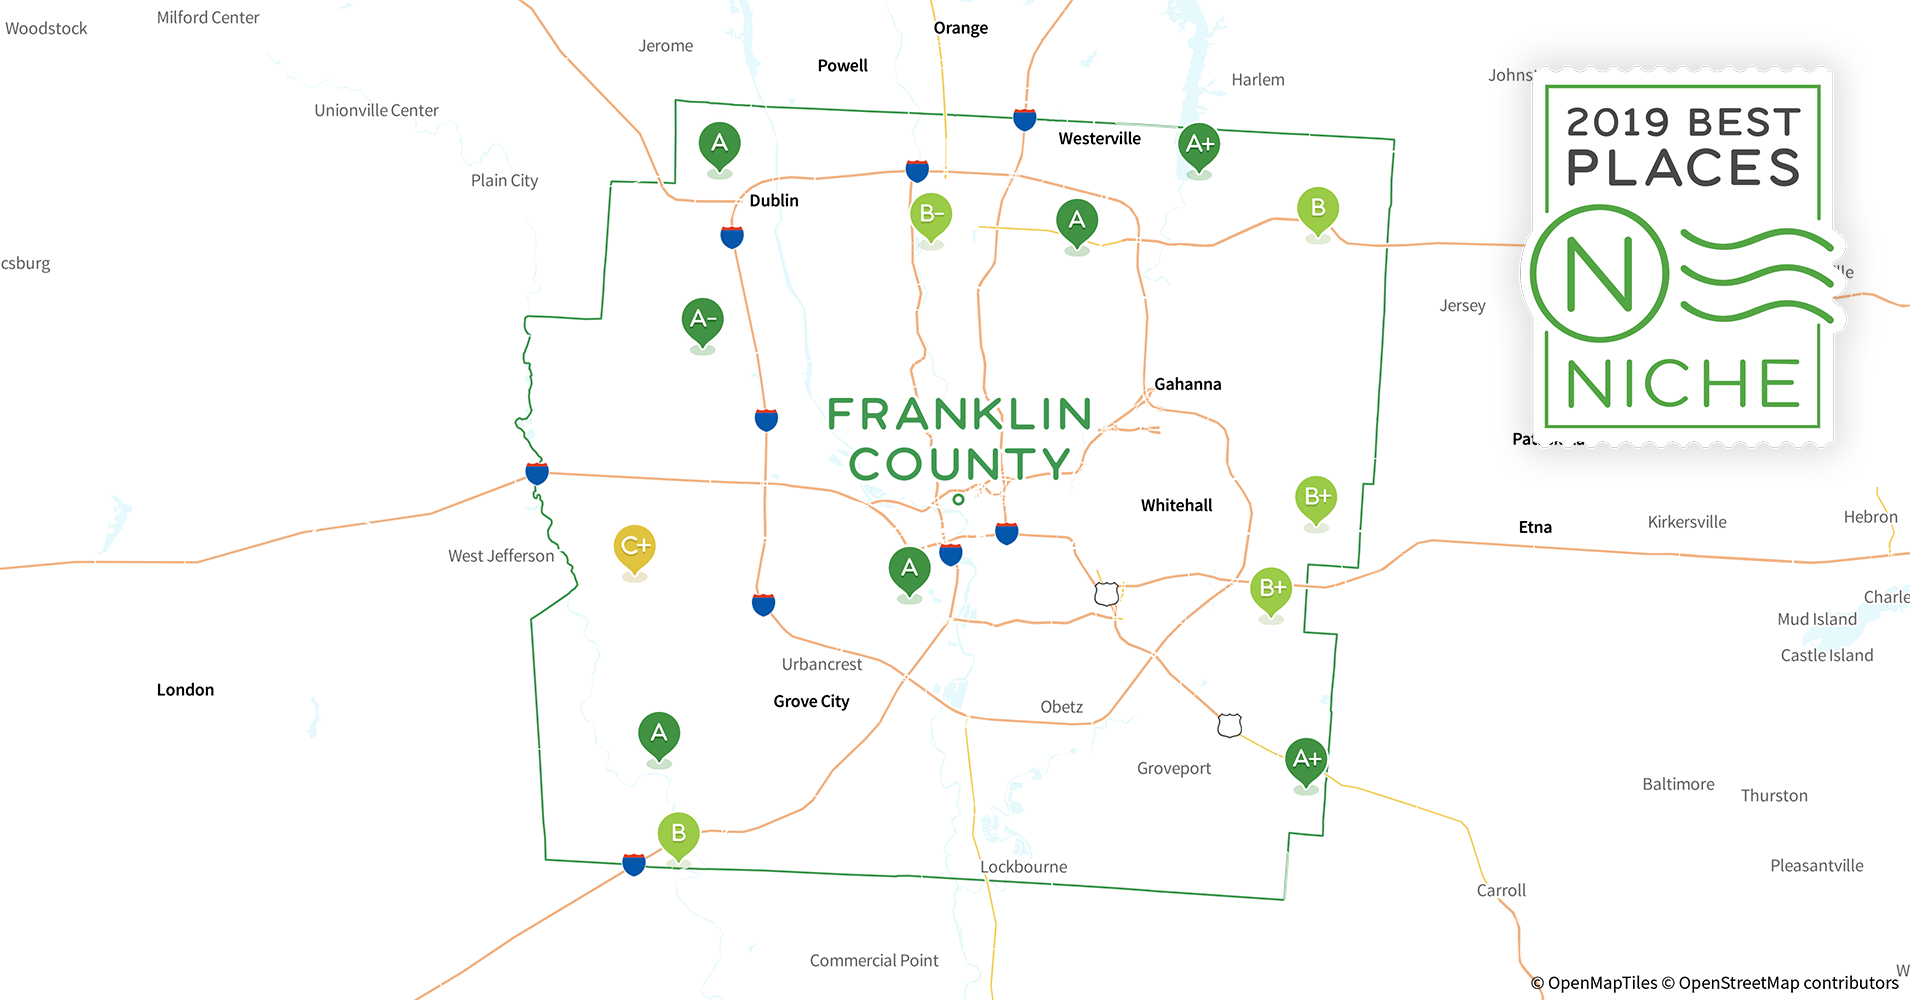 2019 Safe Places to Live in Franklin County, OH - Niche Zip Code Map Columbus Ohio Murders on cleveland tn zip codes map, ohio on us map, columbus ohio atlas, columbus ohio counties by zip, columbus ohio area code, columbus ohio region map, columbus mississppi map, columbus ohio phone map, columbus ohio home, columbus ohio zip code chart, columbus ohio school map, columbus ohio on map, ohio hilliard subdivisions map, 254 area code cities map, columbus ohio hoover reservoir lake map, columbus indiana people trail map, columbus zip code list, columbus water plant map, columbus transit map, columbus ohio expo center map,